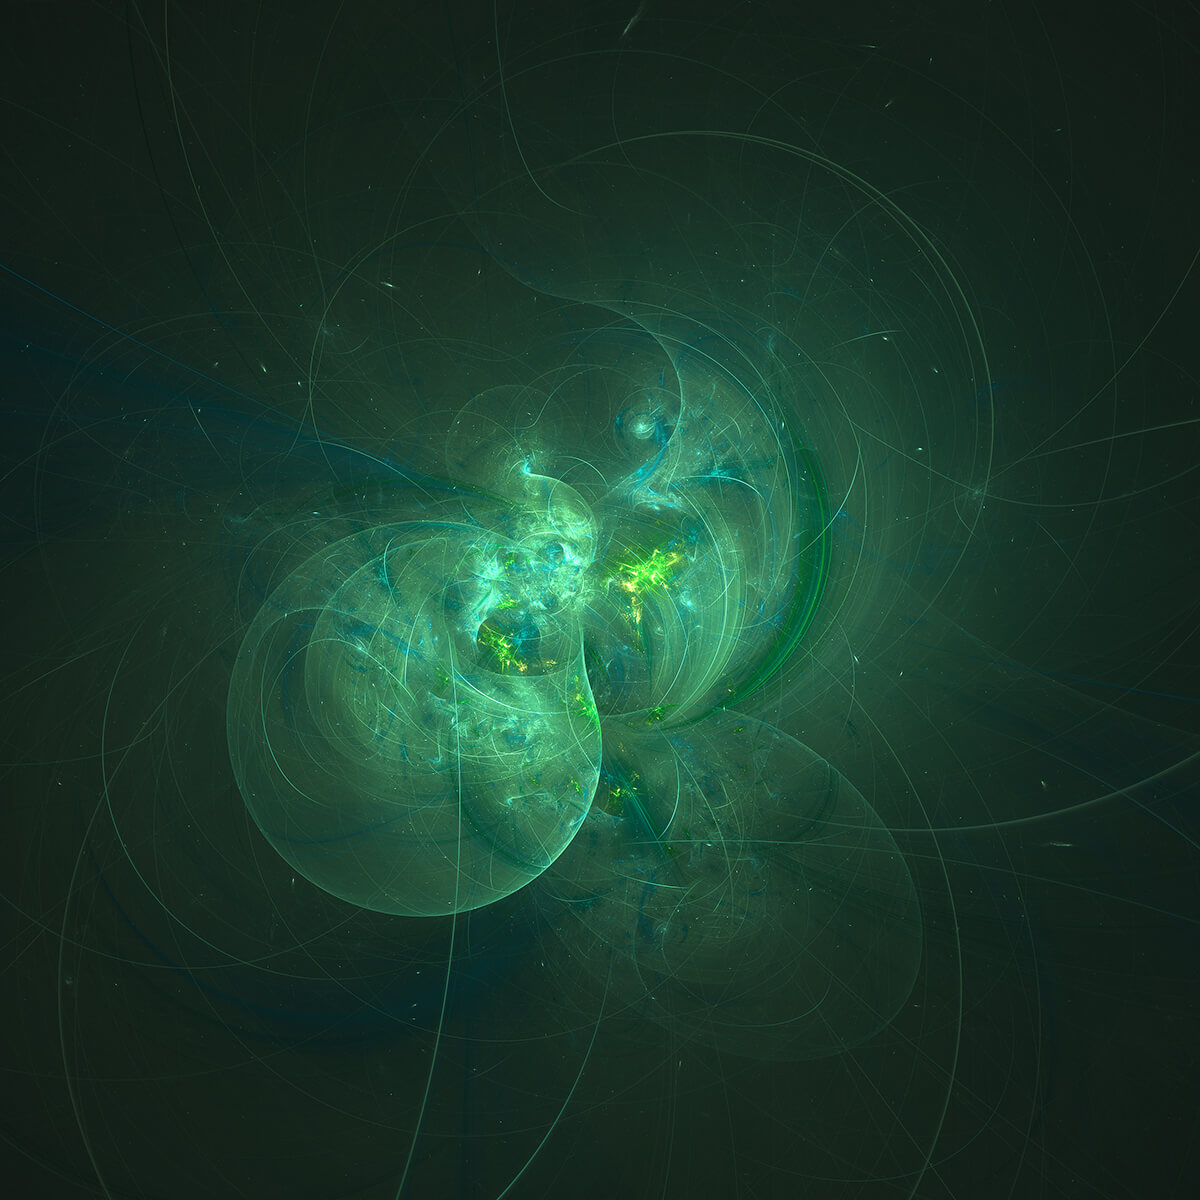 3D render of green fractal shapes